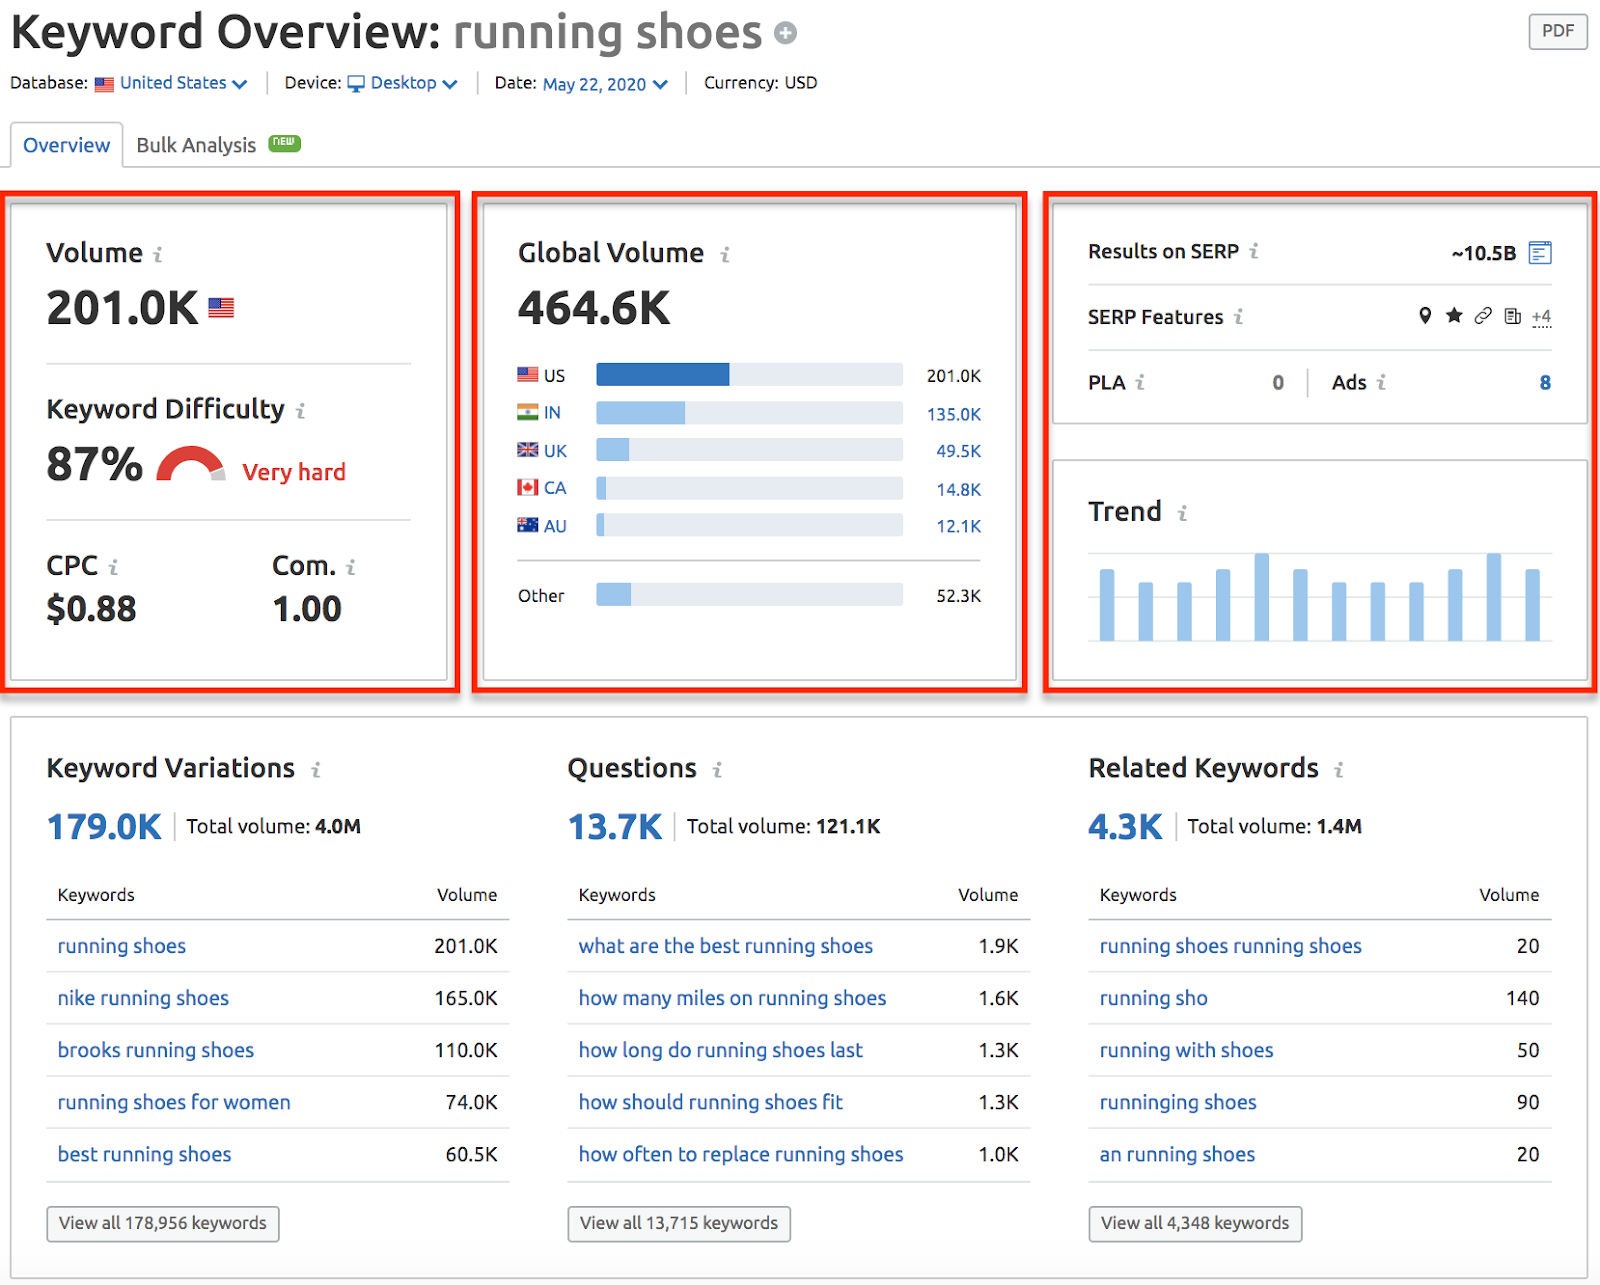 Data from the SEMrush keyword overview report